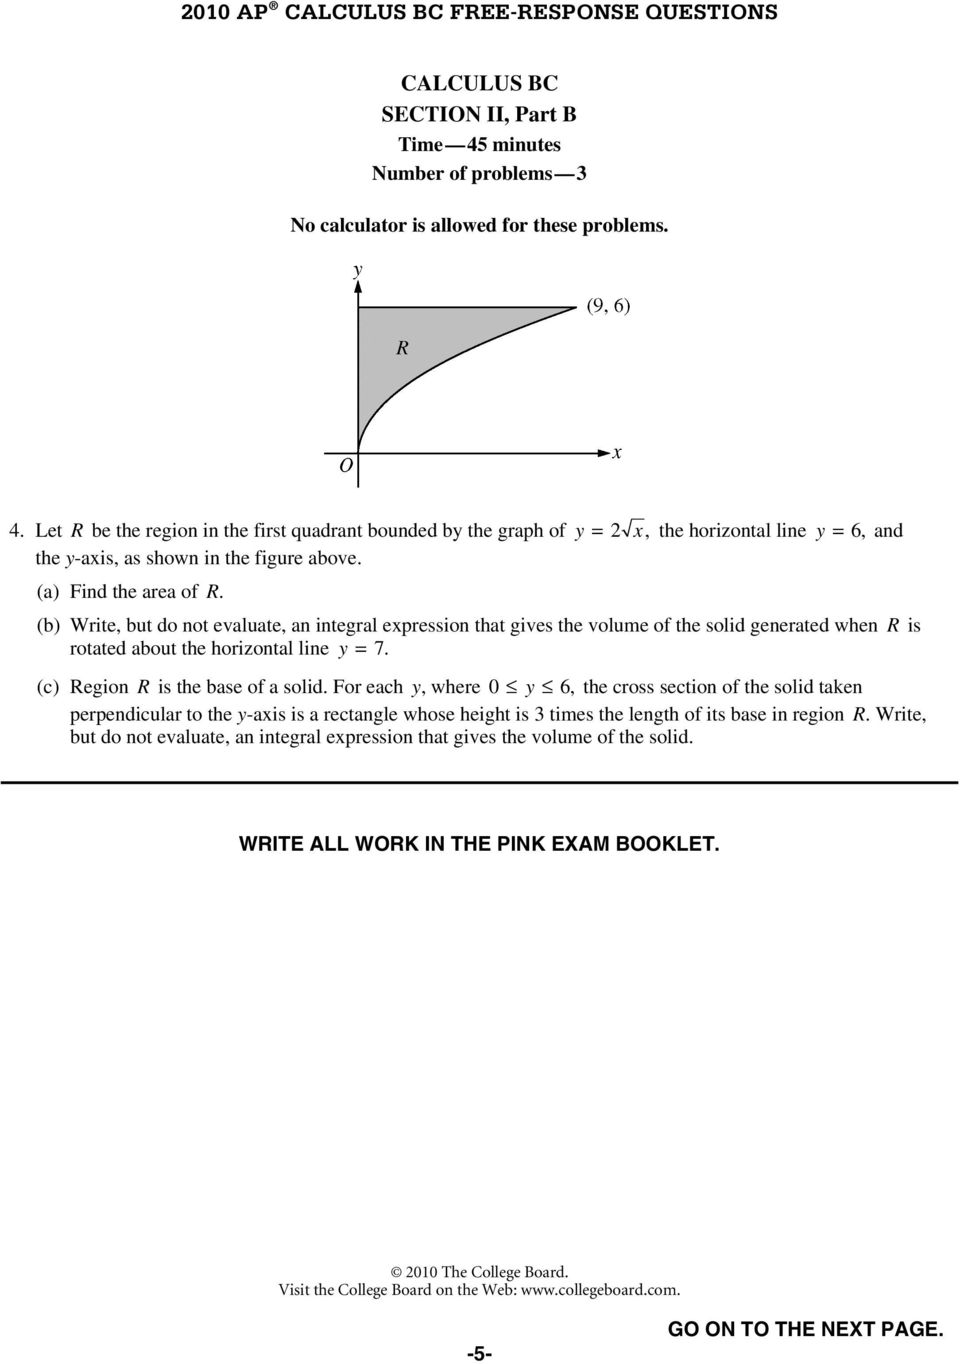 Ap Calculus Bc 2010 Free Response Questions Pdf Free Download